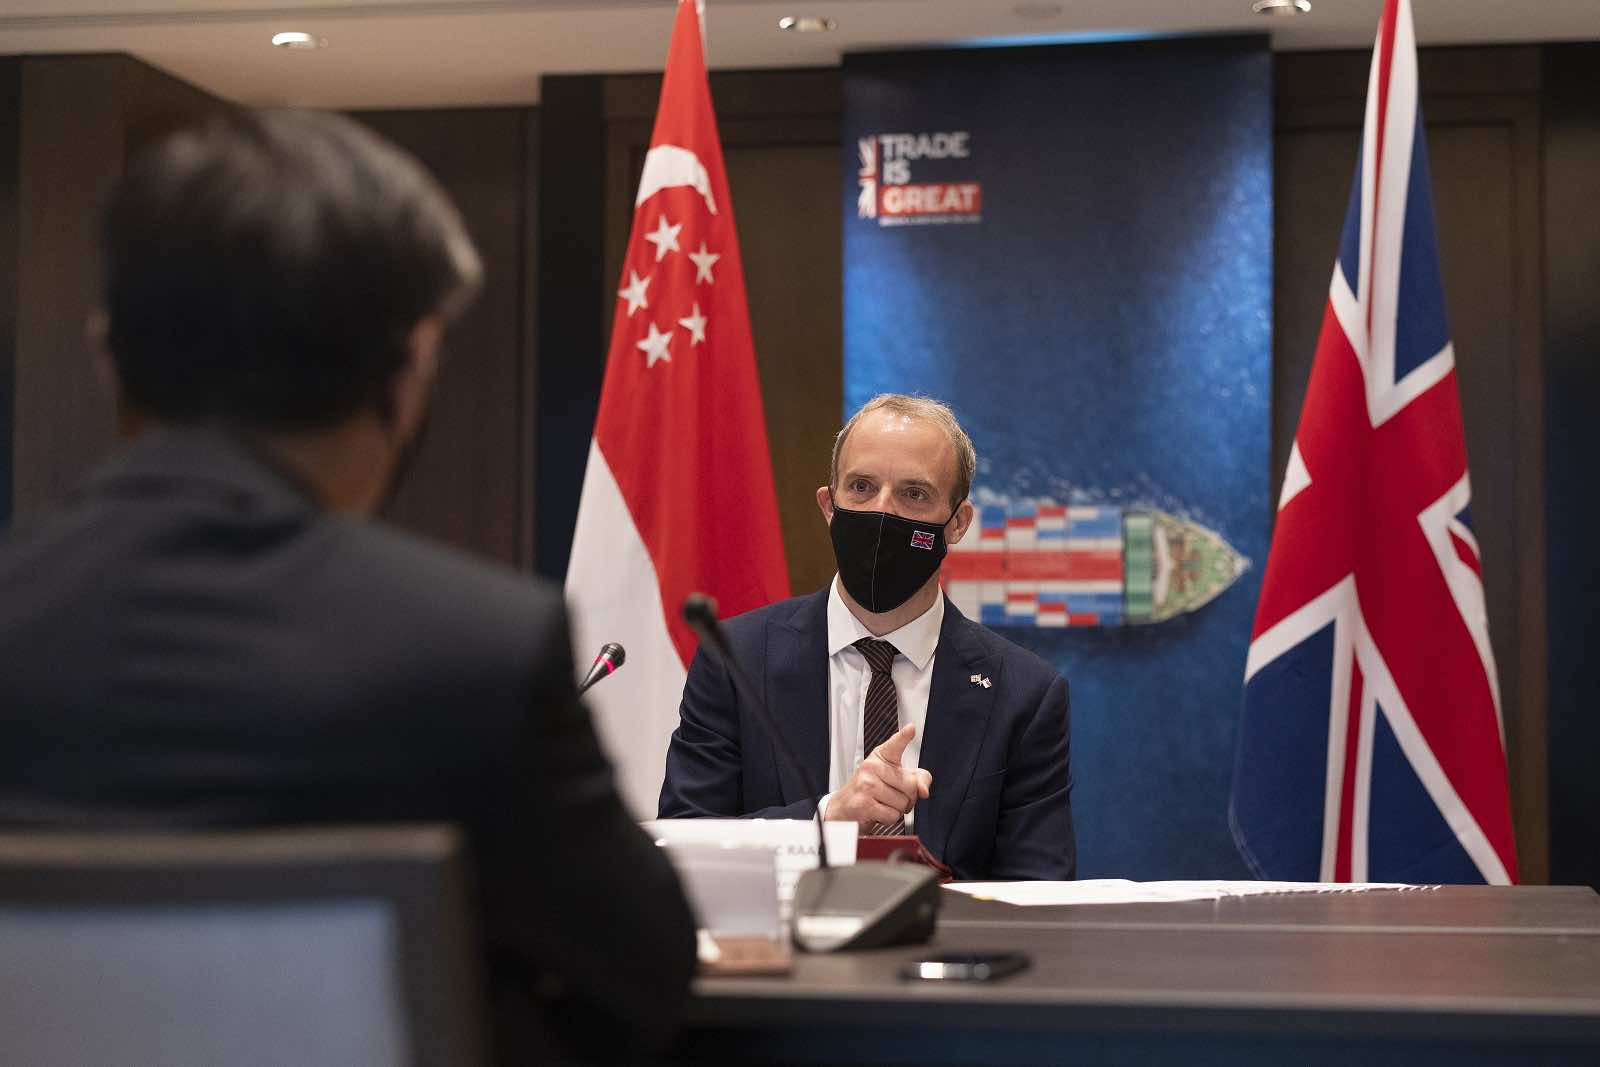 UK Foreign Secretary Dominic Raab holds a roundtable with business leaders during his visit to Singapore, 24 June 2021 (Simon Dawson/No 10 Downing Street/Flickr)